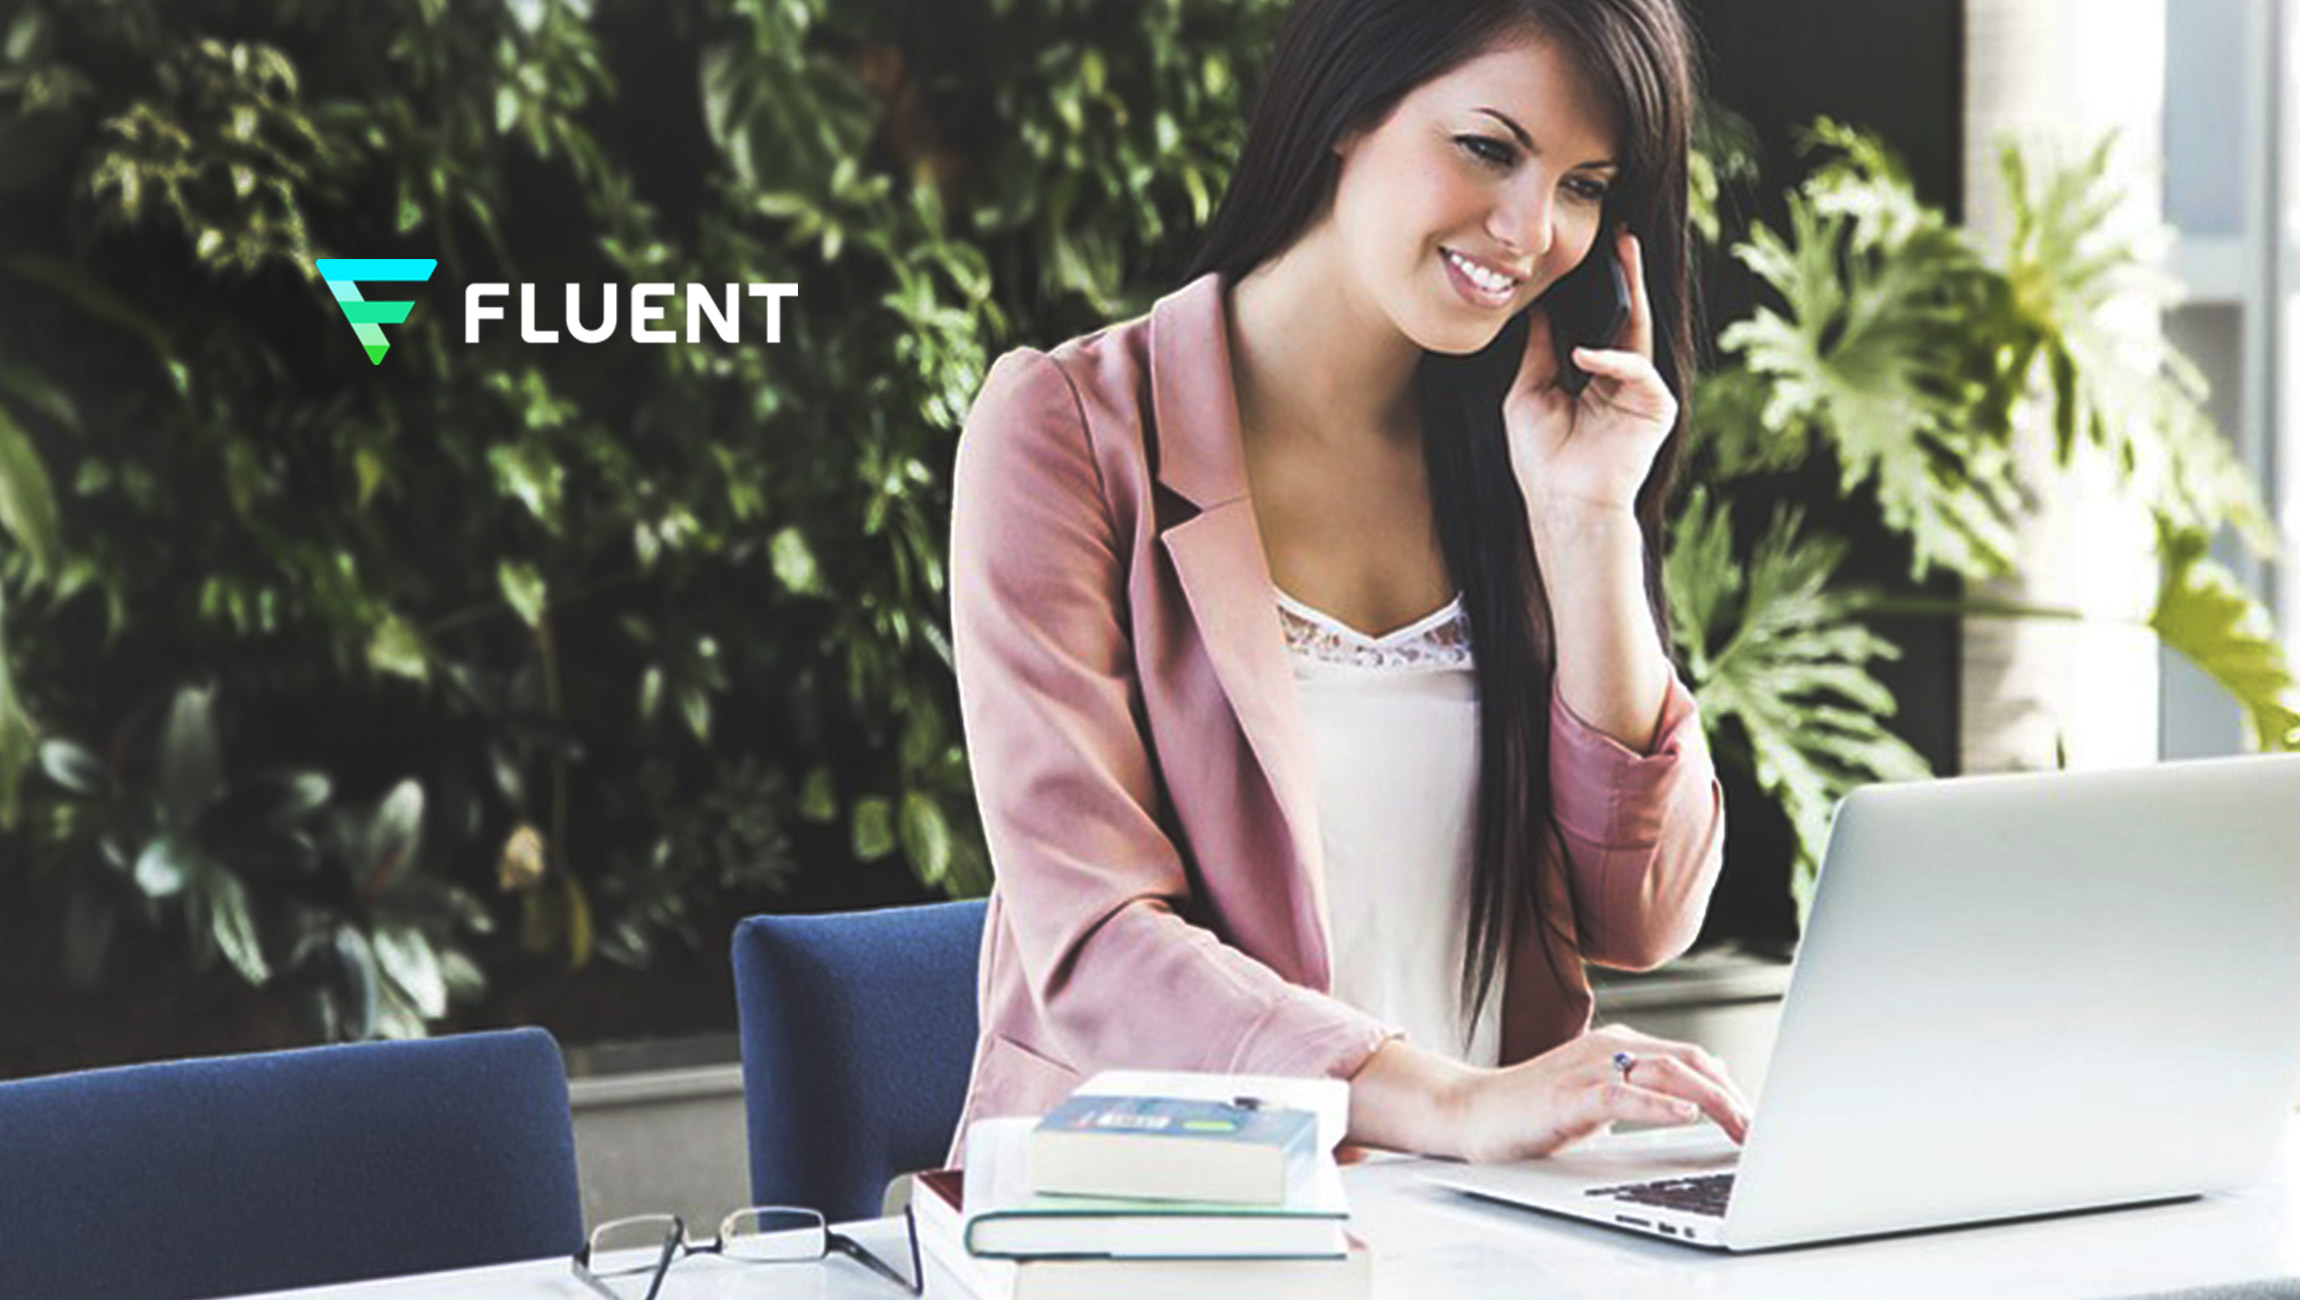 Fluent Announces Recipients of Inaugural Business Empowerment Program to Support Minority and Women-Owned Businesses